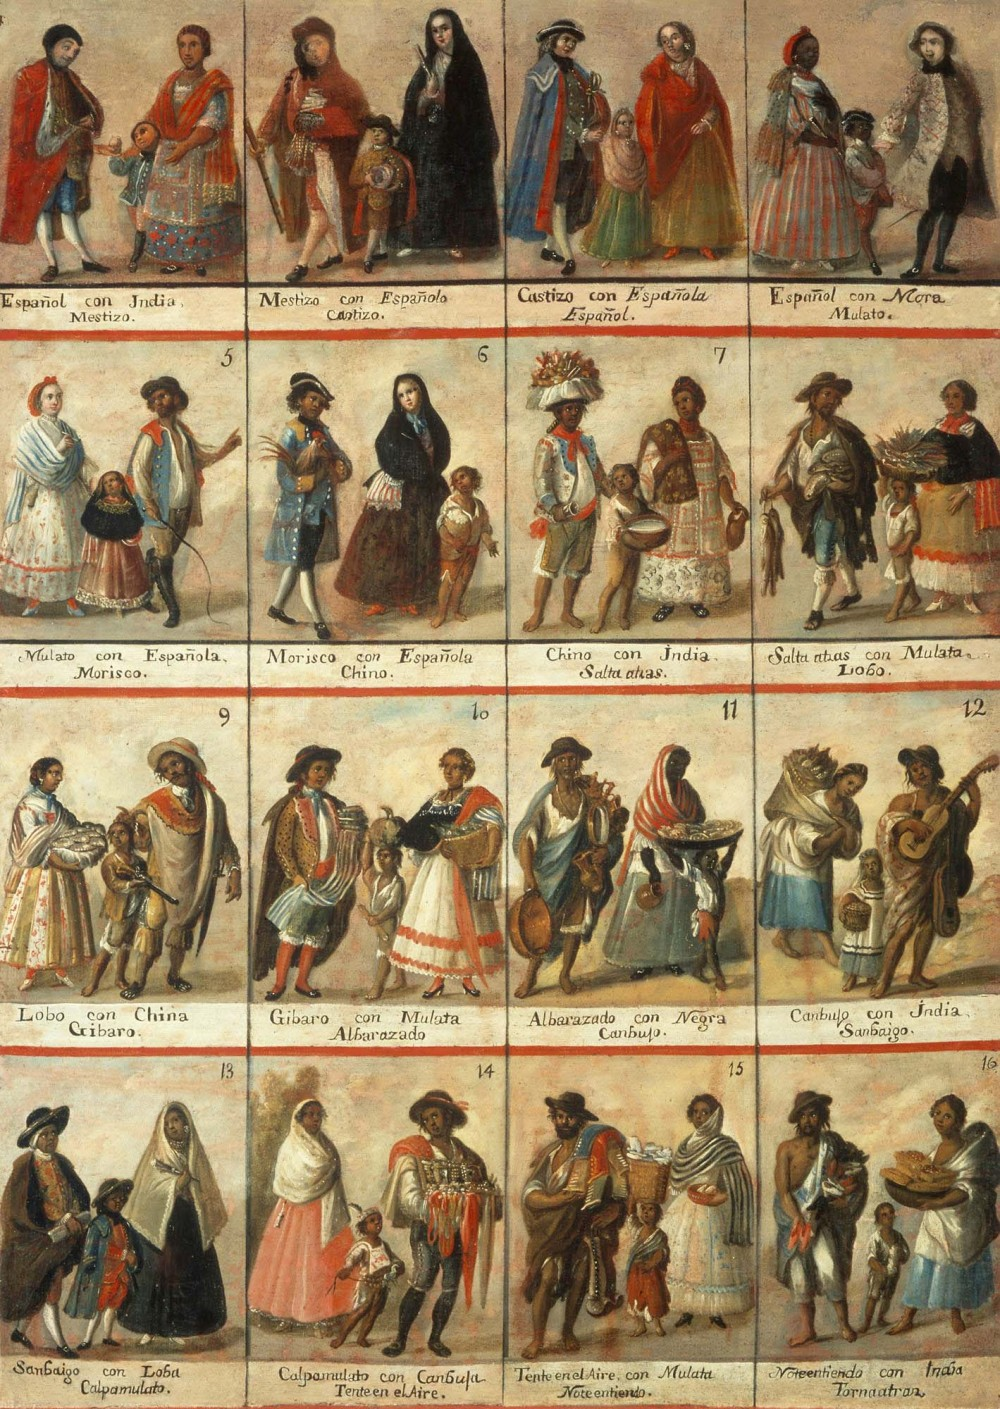 """Unknown artist, """"Las Castas,"""" Museo Nacional del Virreinato, Tepotzotlan, Mexico, via Wikimedia. Casta paintings illustrated the varying degrees of intermixture between colonial subjects, defining them for Spanish officials."""